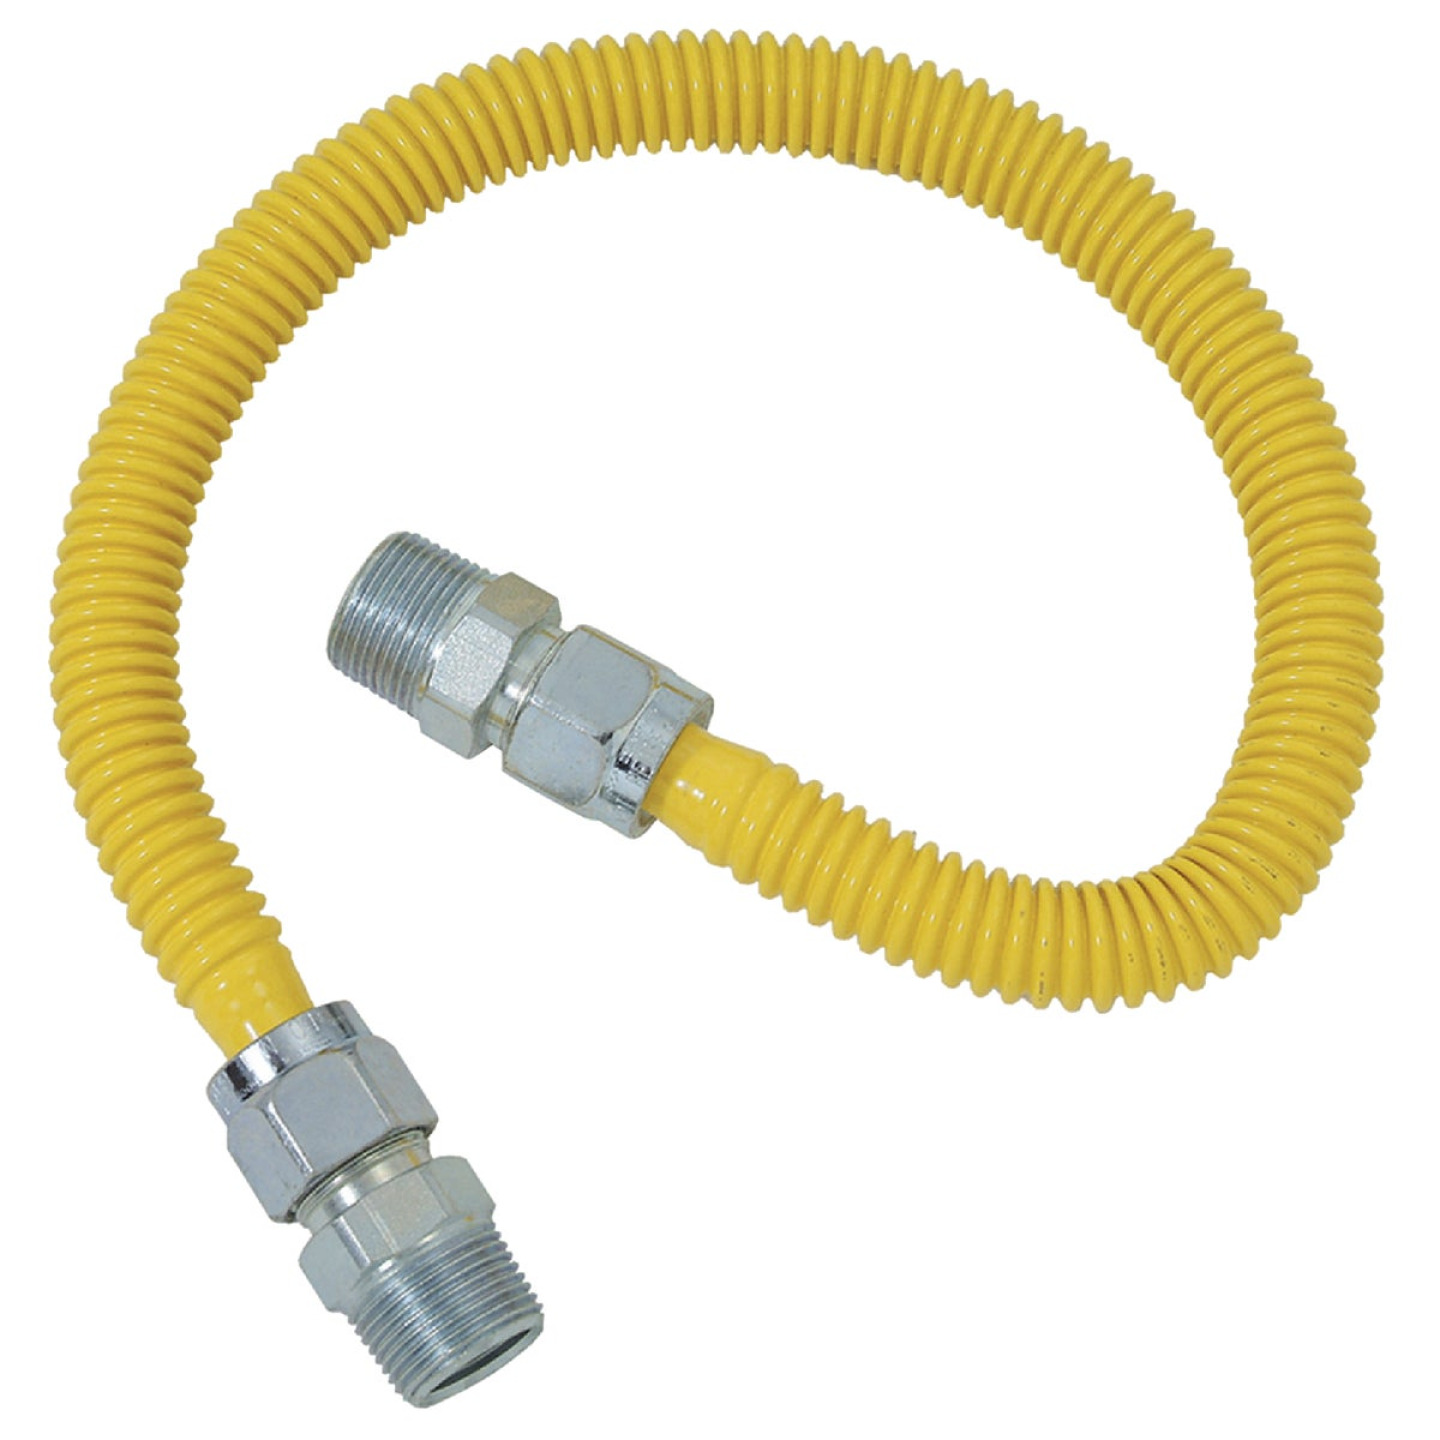 Dormont 5/8 In. OD x 24 In. Coated Stainless Steel Gas Connector, 1/2 In. MIP (Tapped 3/8 In. FIP) x 1/2 In. MIP (Tapped 3/8 In. FIP) Image 1